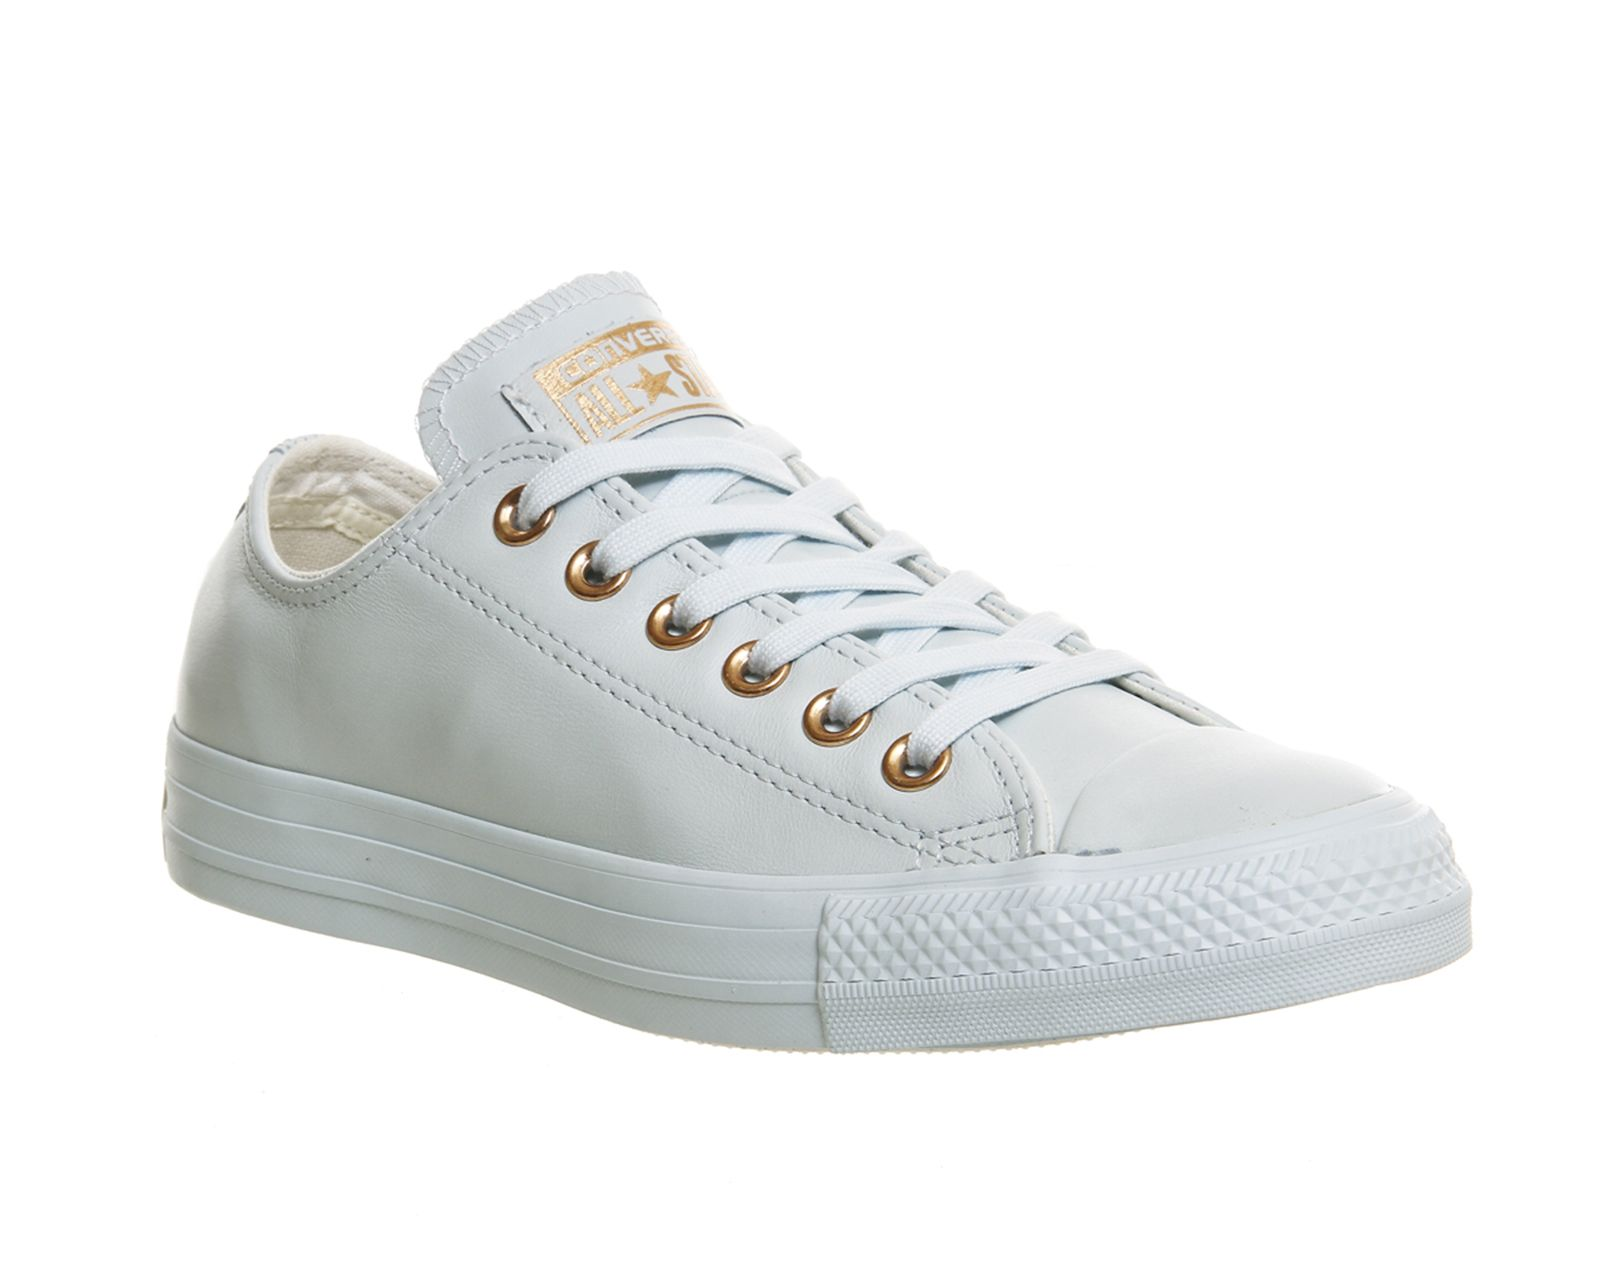 4e6a438aaba Buy Powder Blue Rose Gold Exclusive Converse All Star Low Leather from  OFFICE.co.uk.